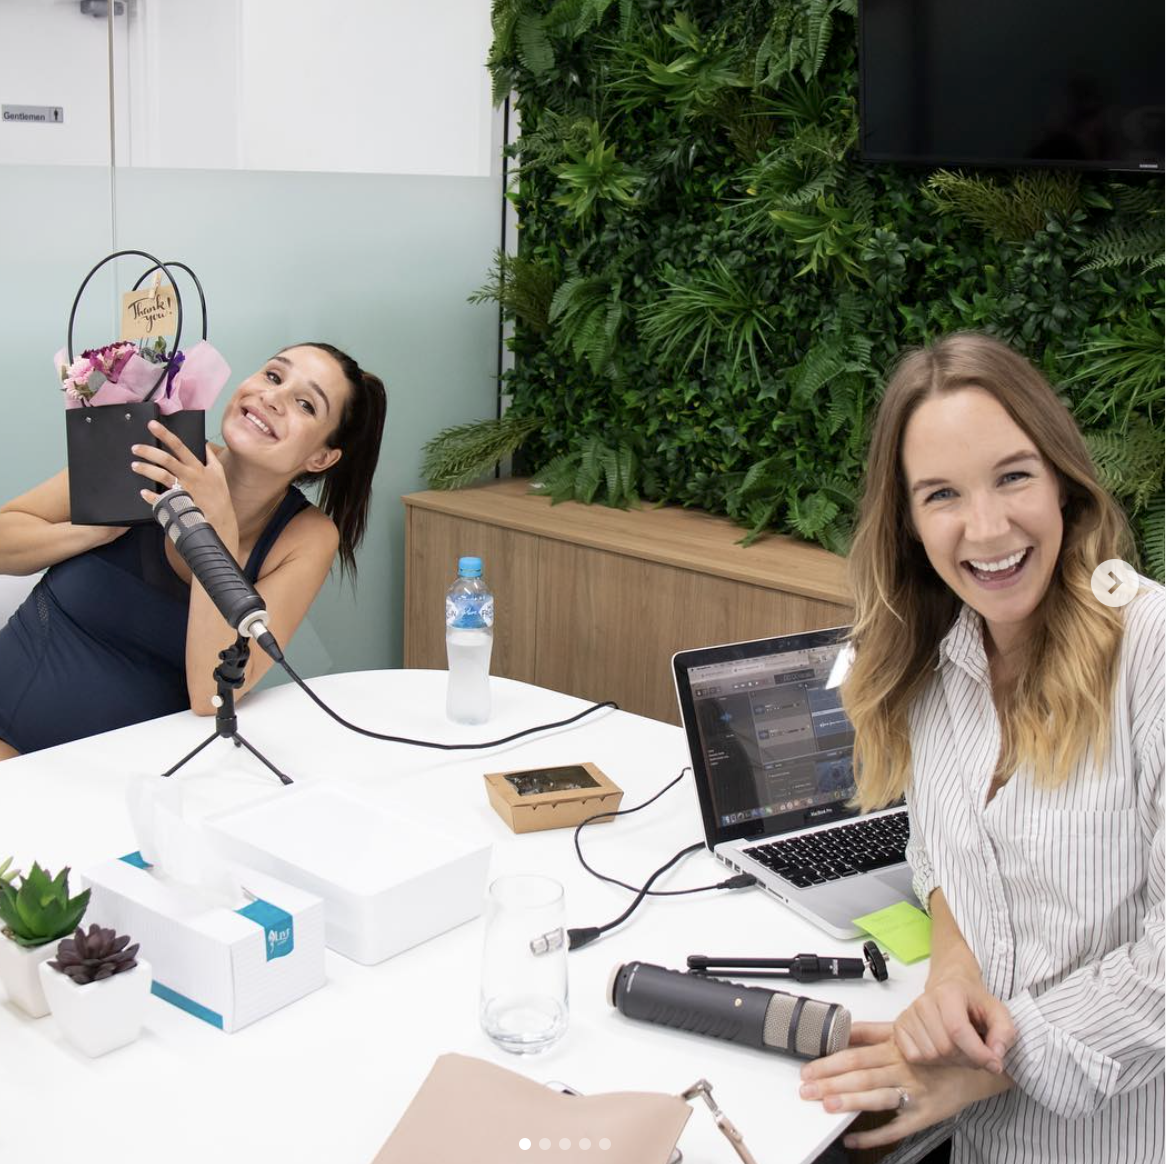 Host of 'The Healthy Hustlers Podcast' Madelyn Carafa interviews Insta-famous trainer Kayla Itsines. Photo via @TheHealthyHustlers